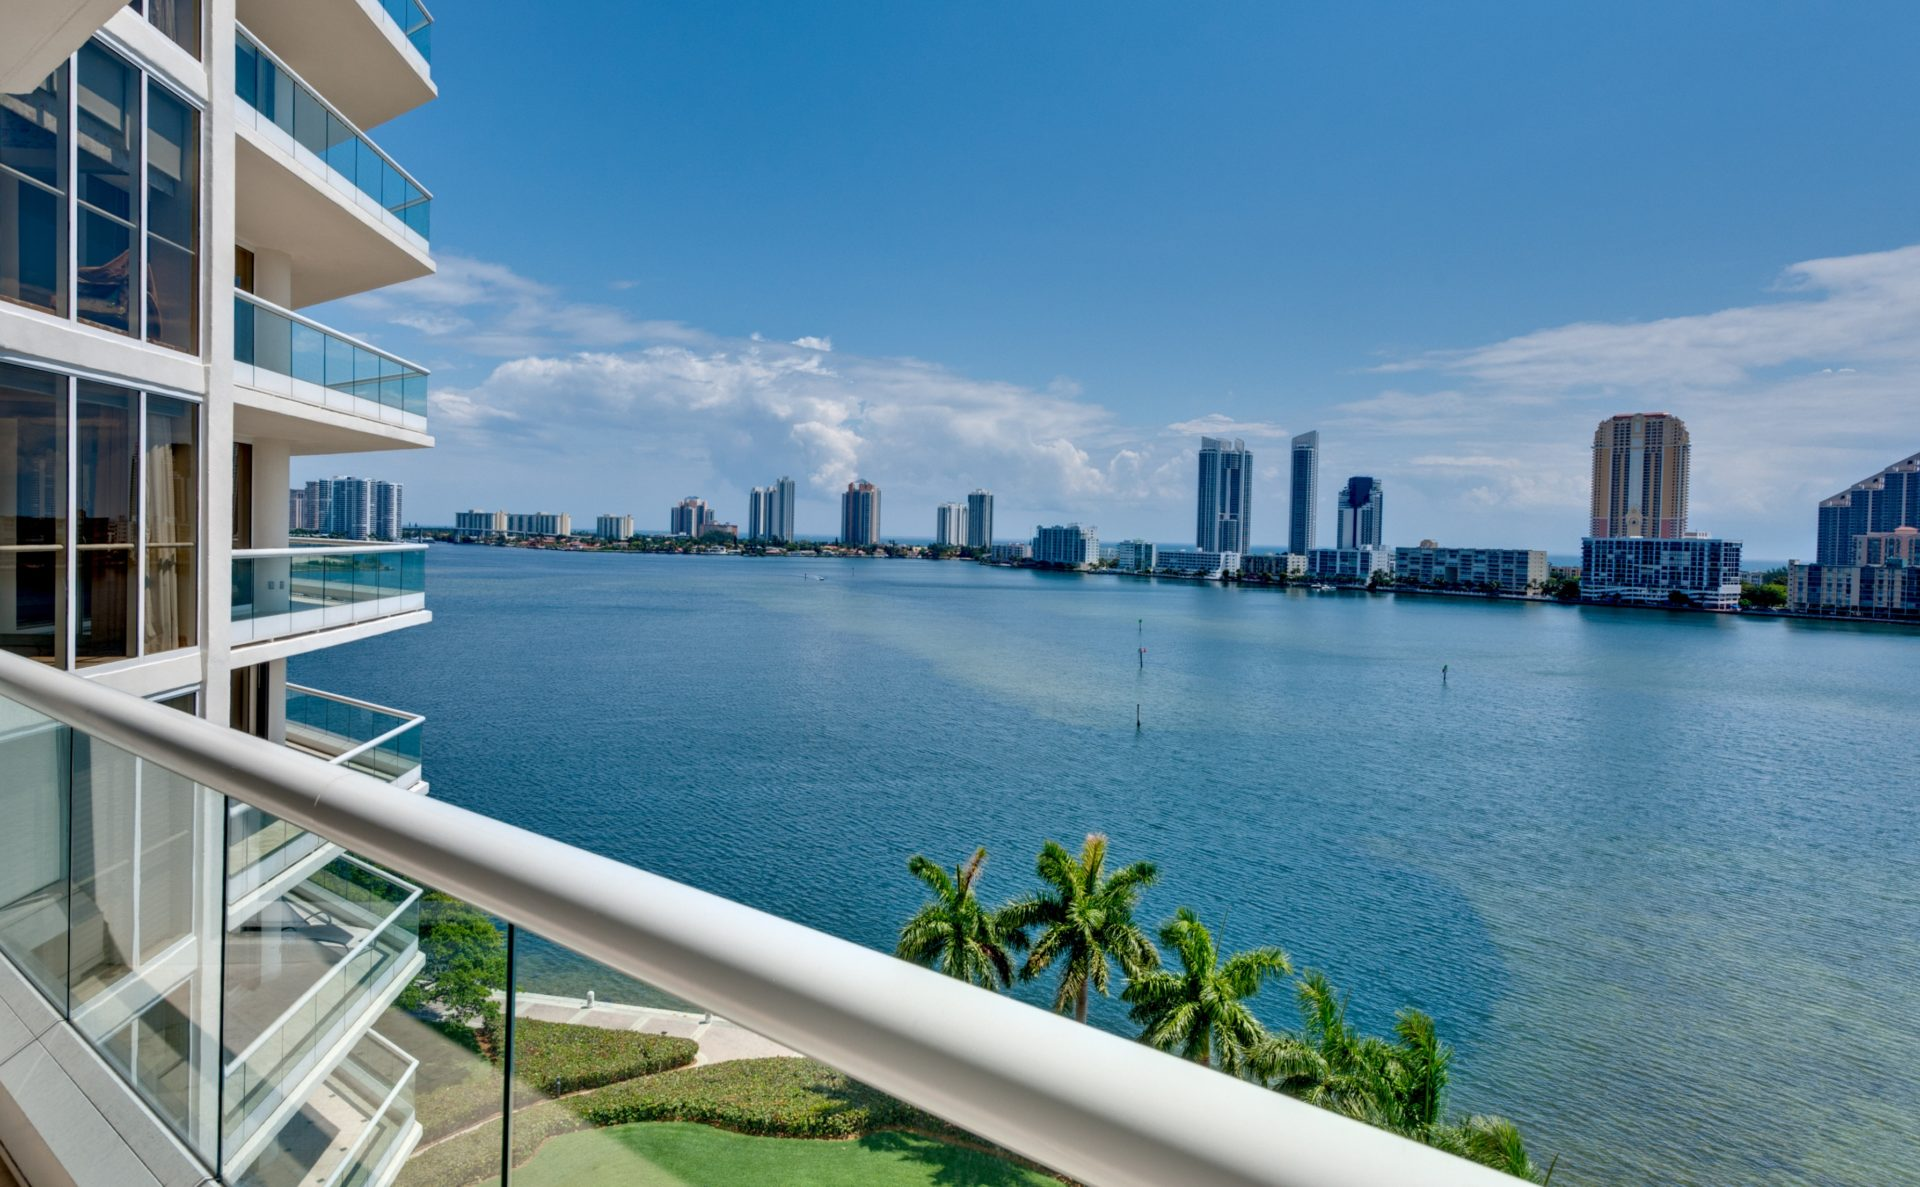 A picture of an apartment in Miami – a good example of the kind of USA property an expat could buy.